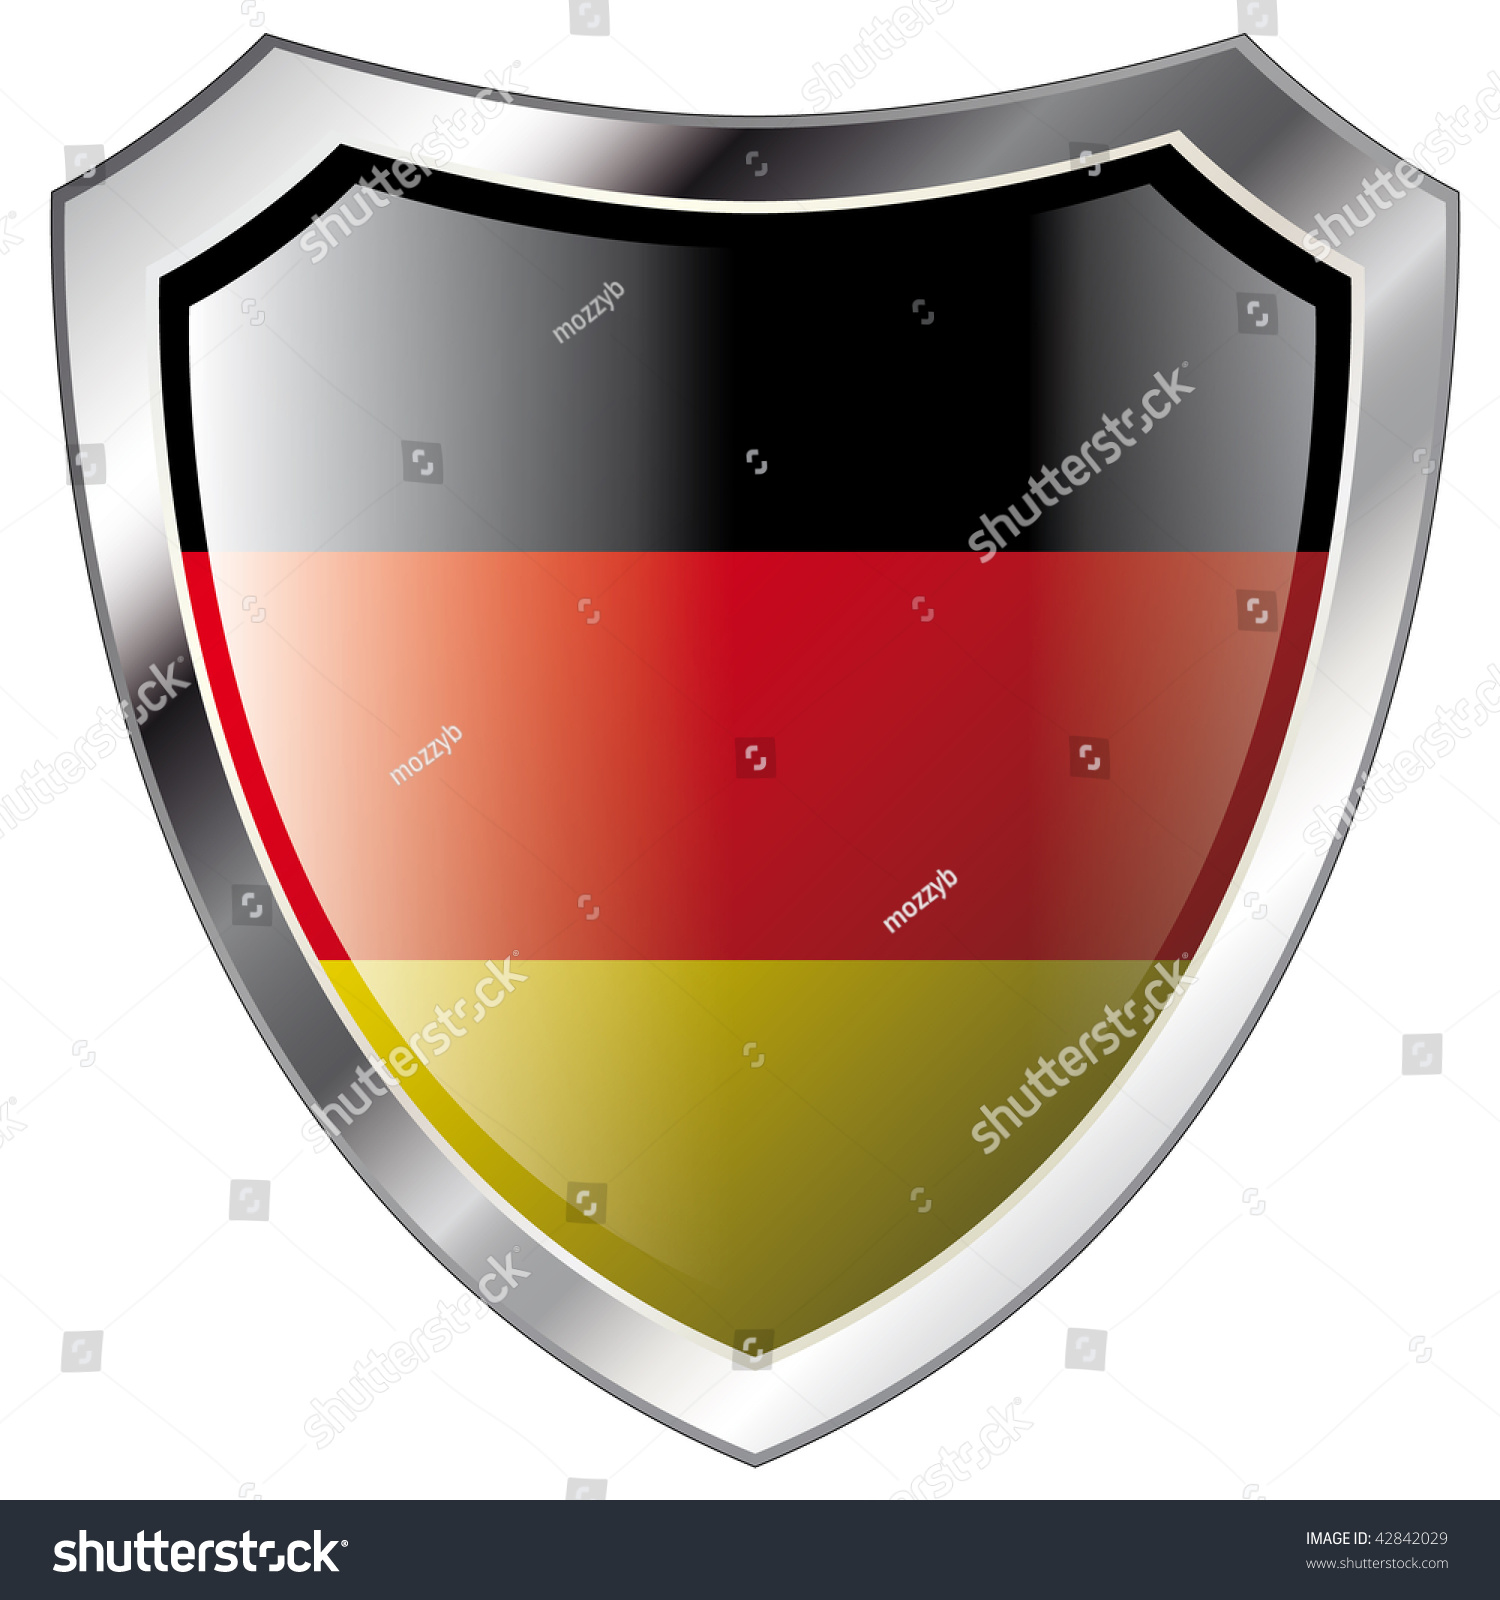 Glossy Shield Free Vector  Download Free Vector Art